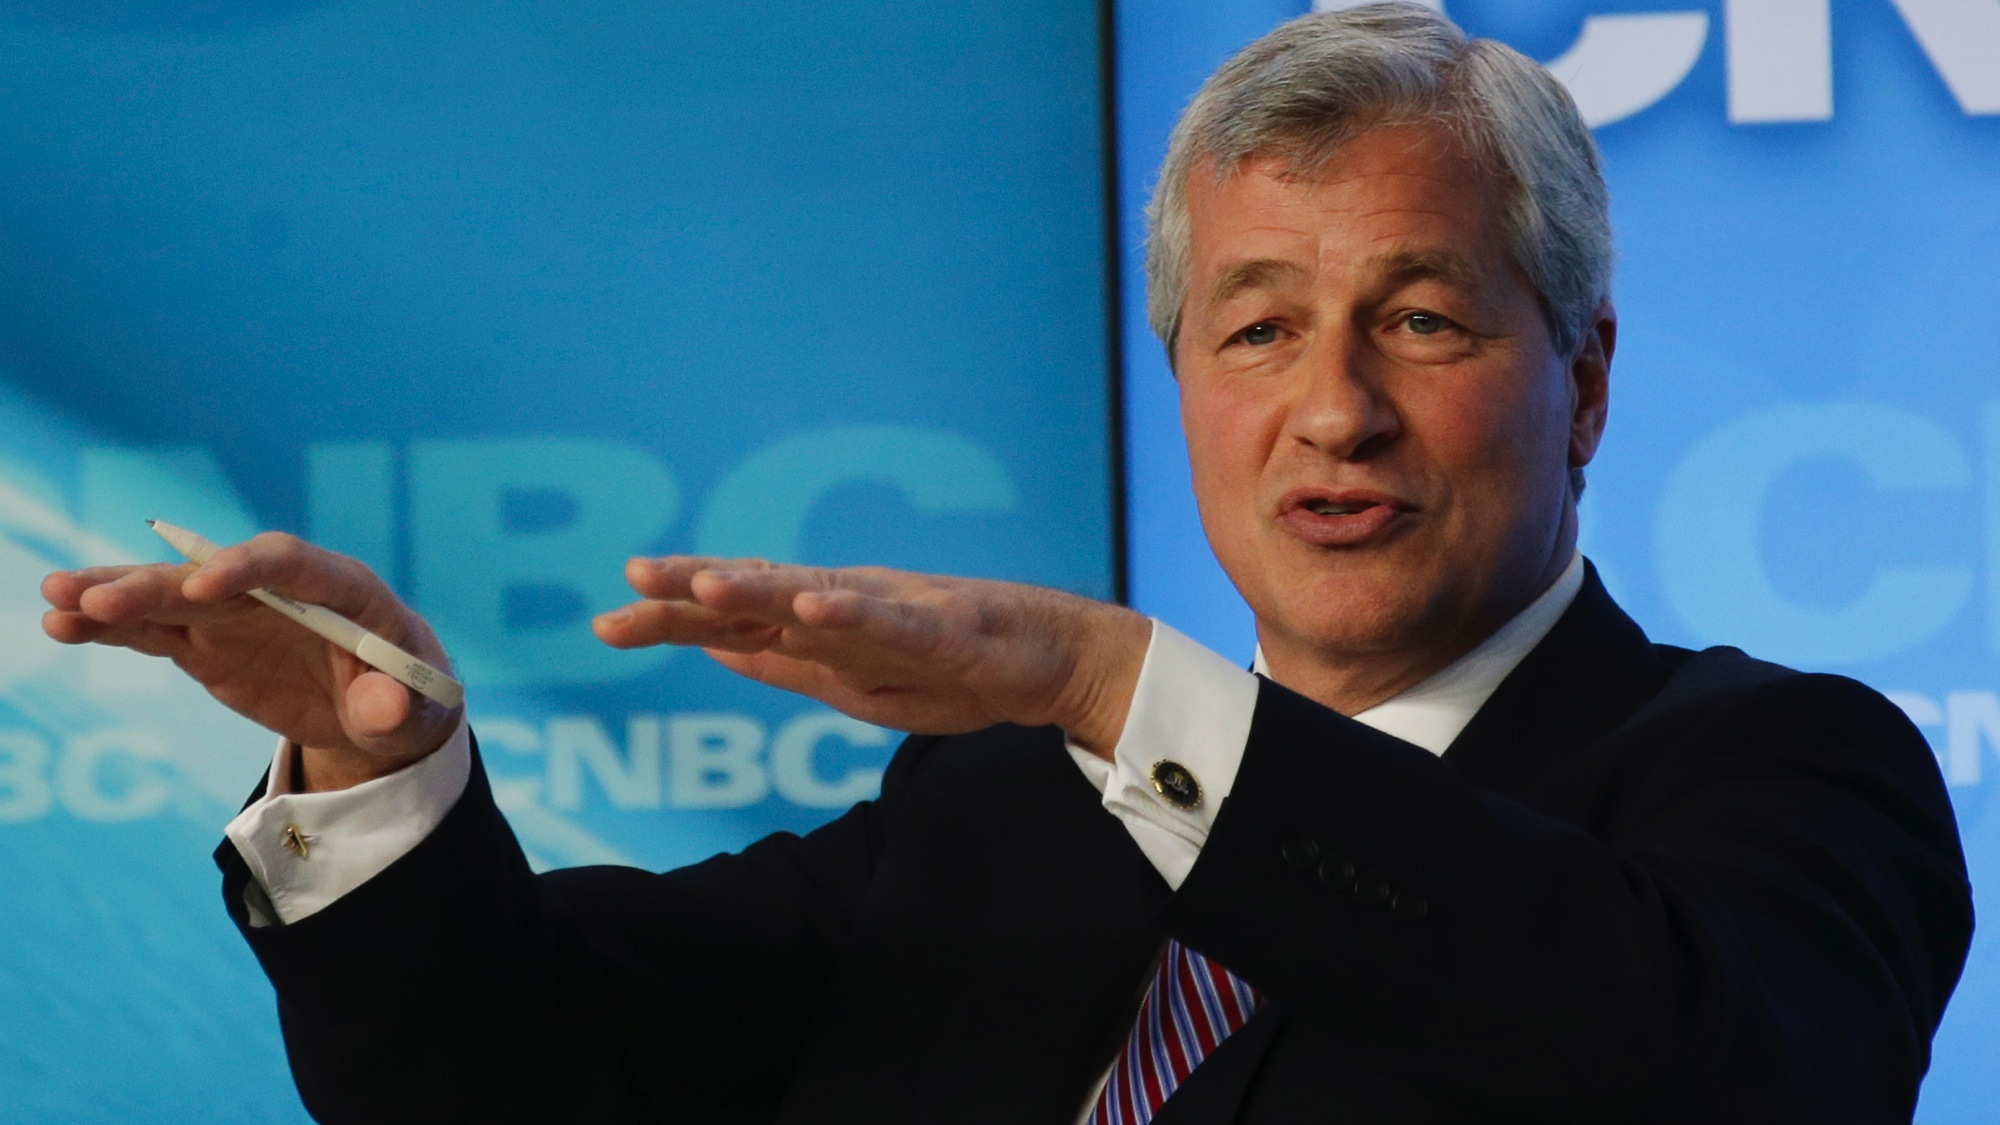 James Dimon of the U.S., chairman and chief executive officer of JP Morgan gestures during the Global Financial Context session at the 43rd Annual Meeting of the World Economic Forum, WEF, in Davos, Switzerland, Wednesday, Jan. 23, 2013.